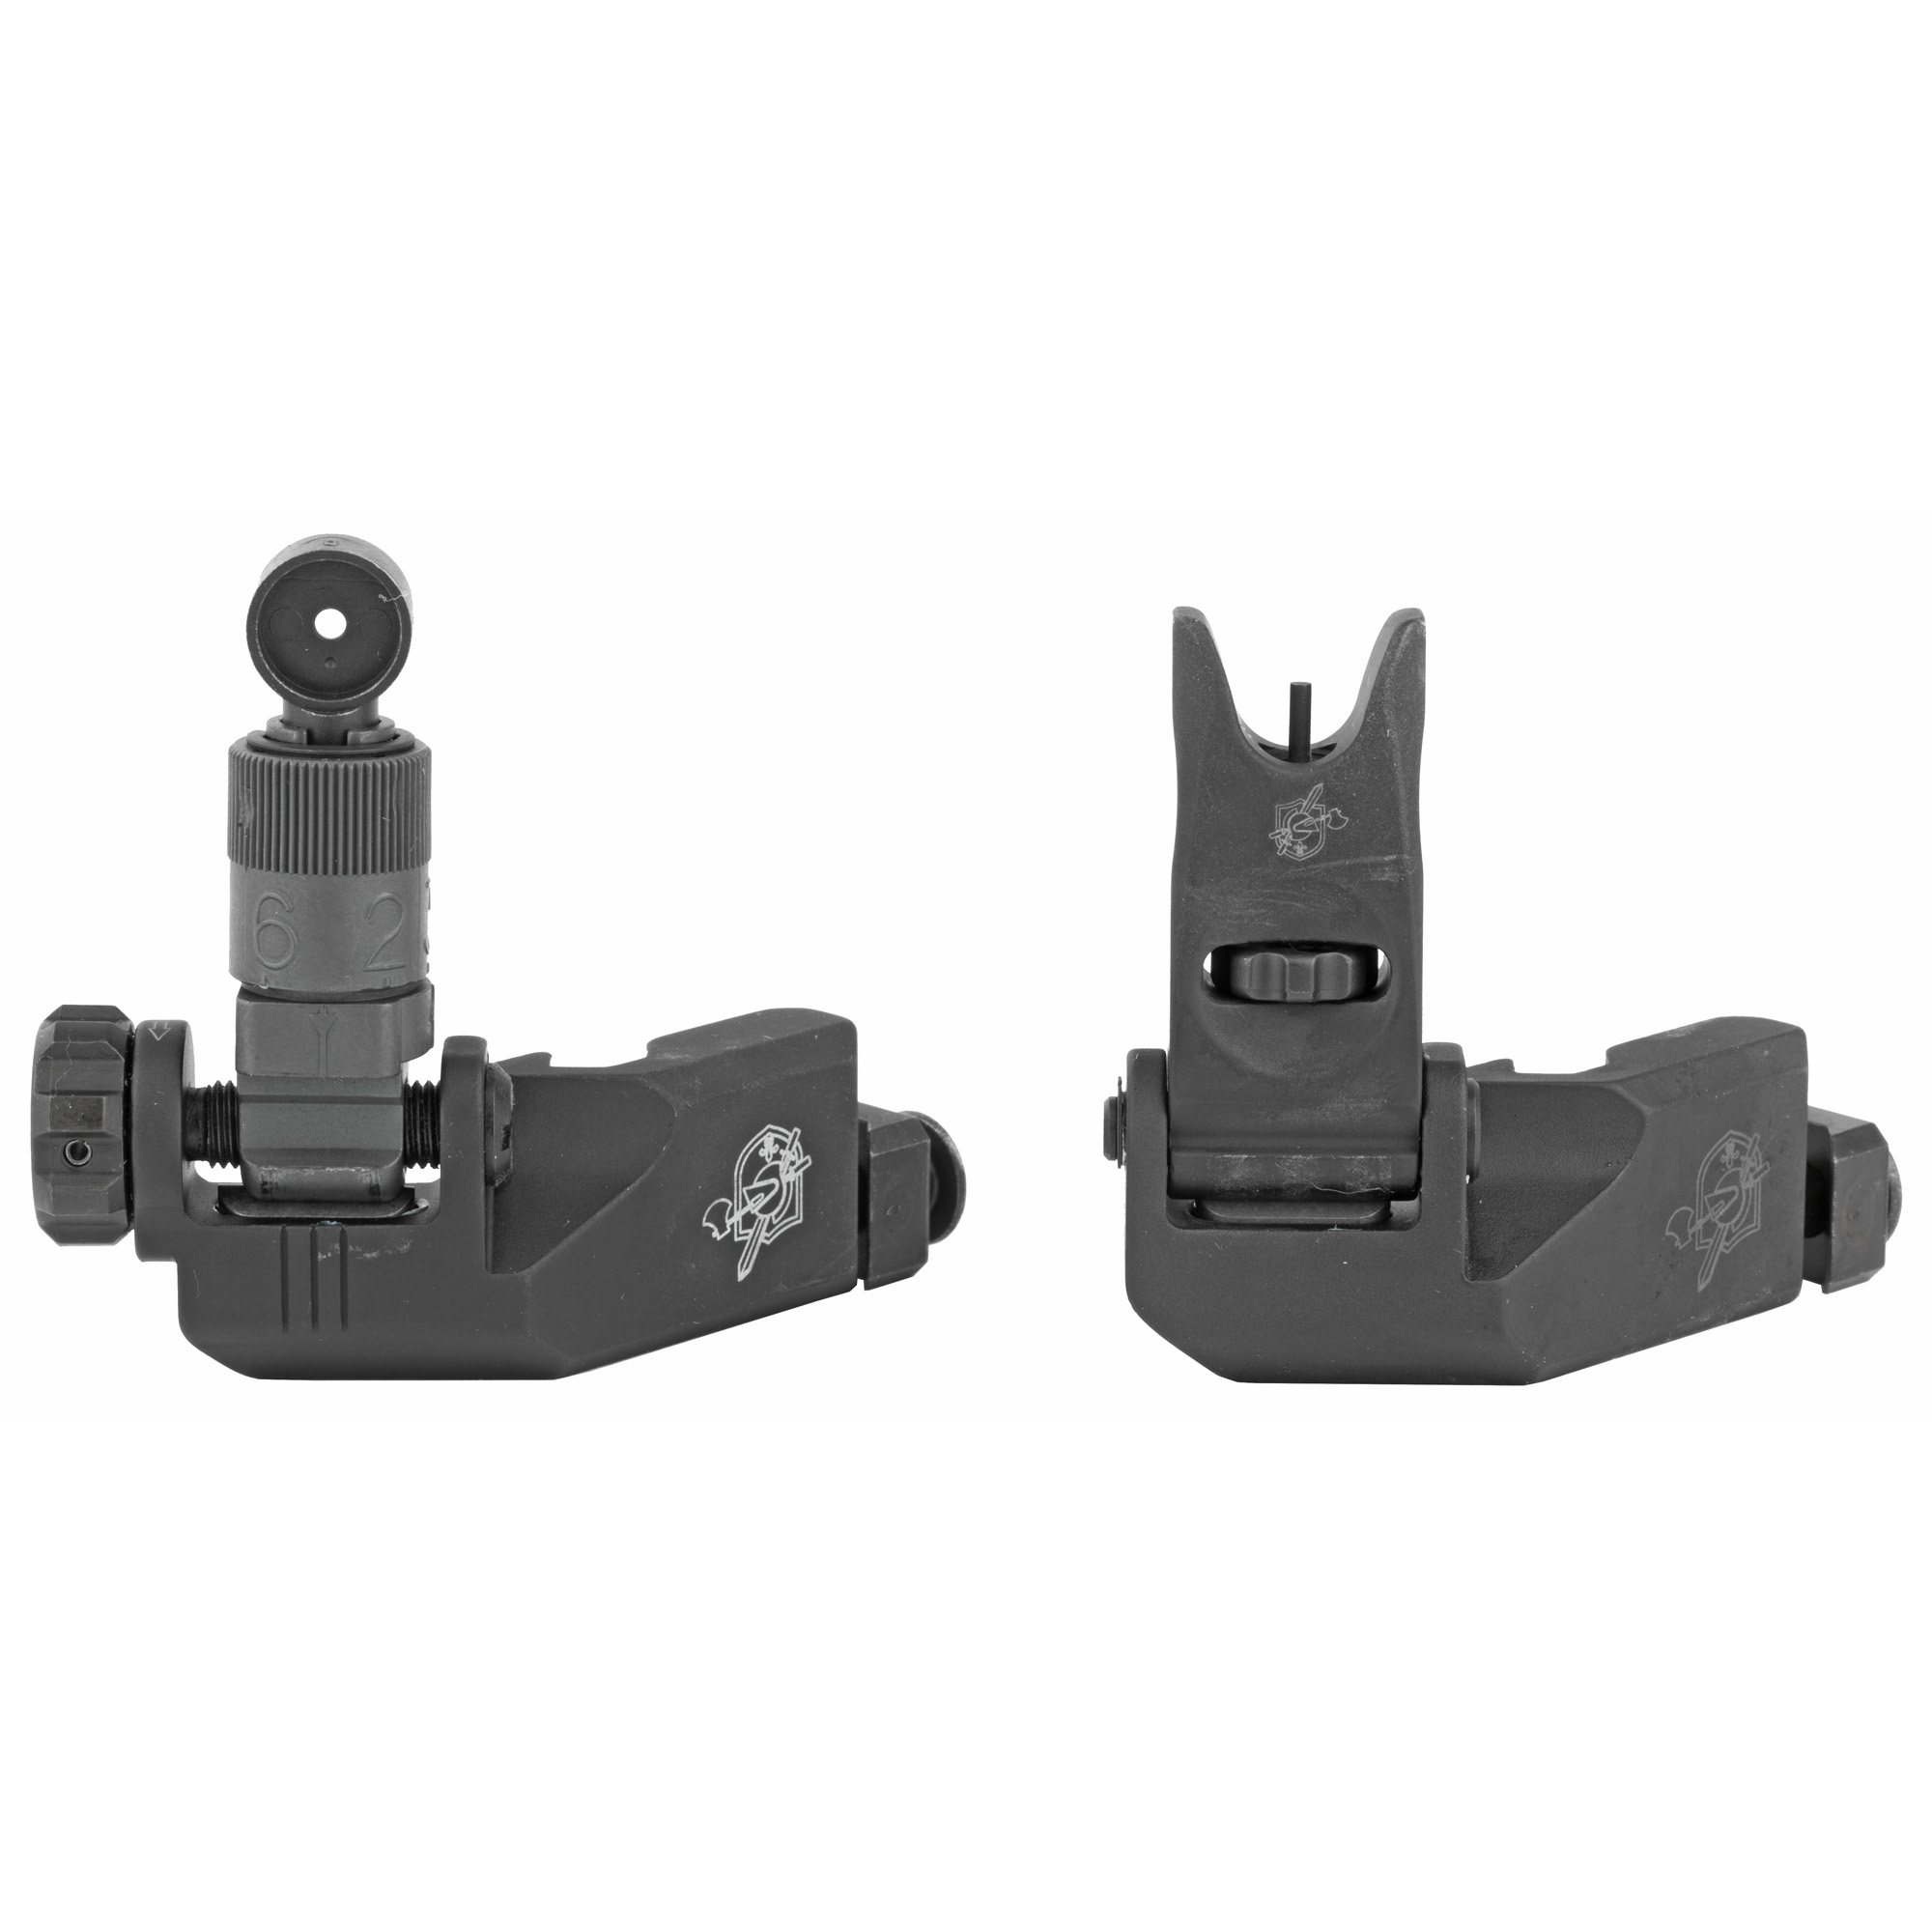 This 45 degree 200-600 meter offset folding sight kit allows shooters easy access to a set of backup iron sights for close range target engagements without the need to remove their primary optic. This kit includes an elevation adjustable 200-600 meter micro rear sight and finger adjustable micro front sight assembly.